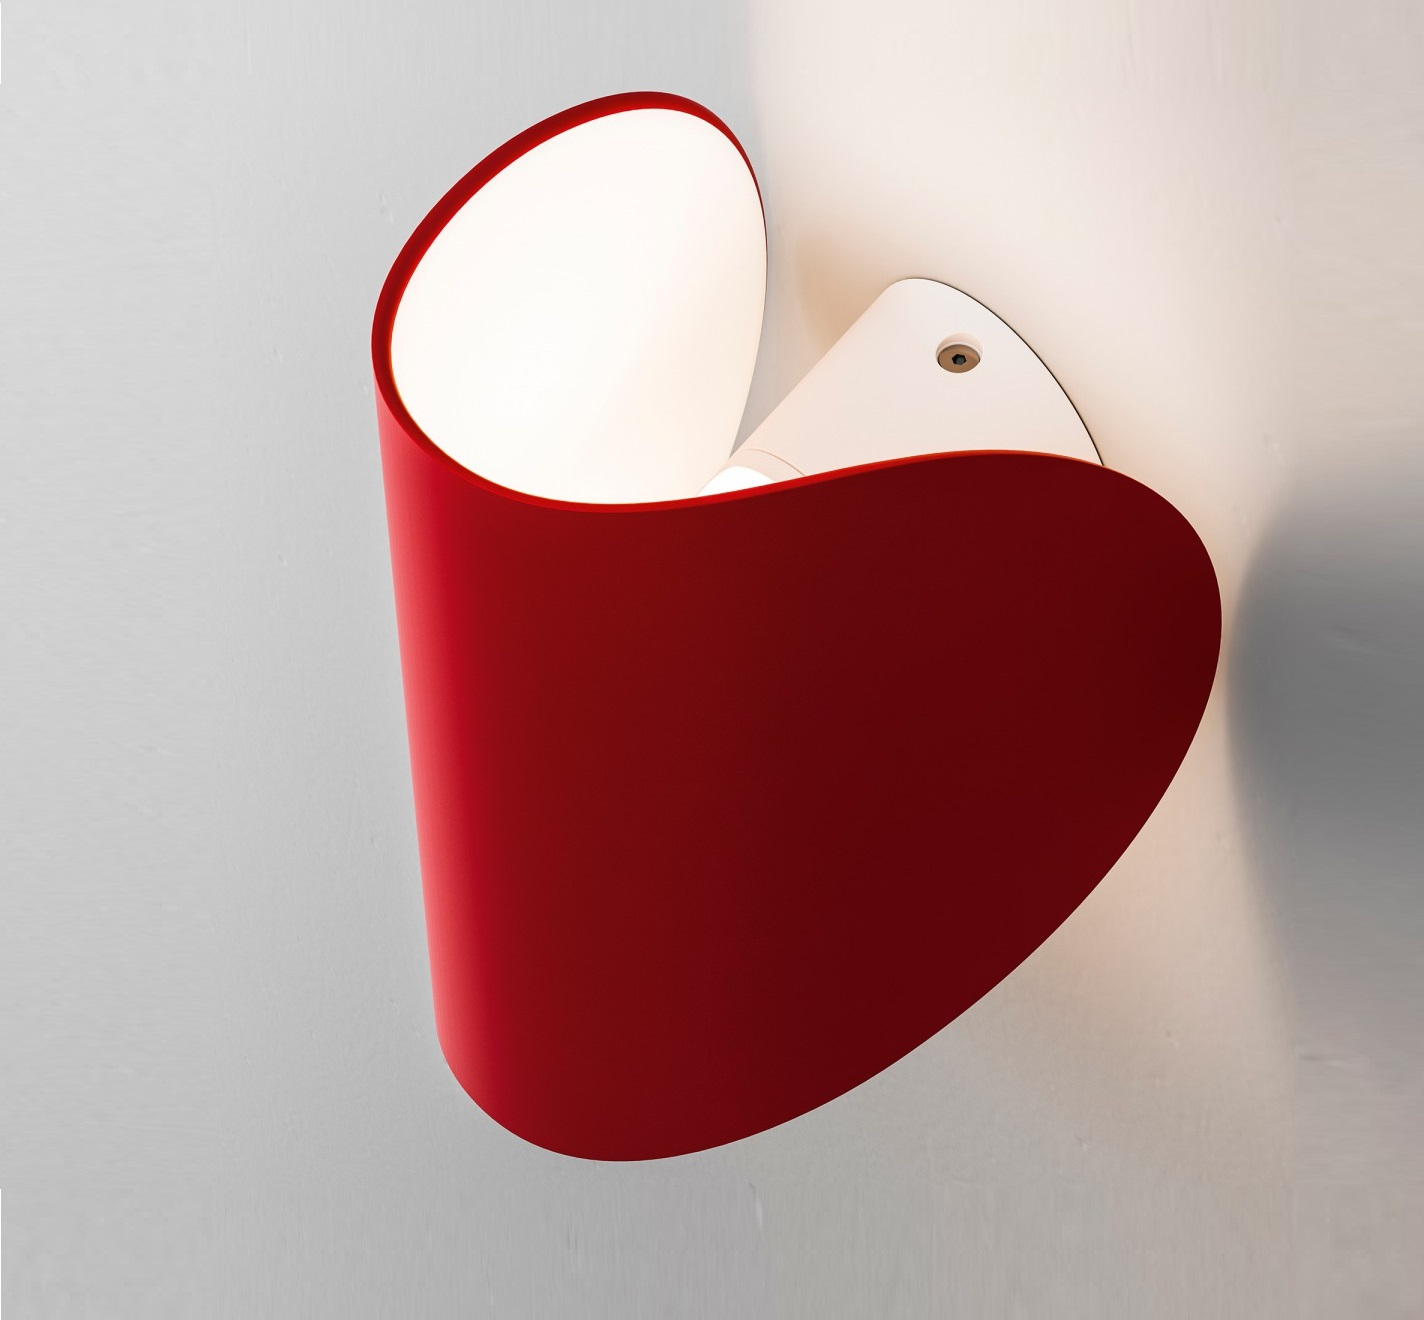 applique murale io rouge led h16 5cm fontana arte luminaires nedgis. Black Bedroom Furniture Sets. Home Design Ideas